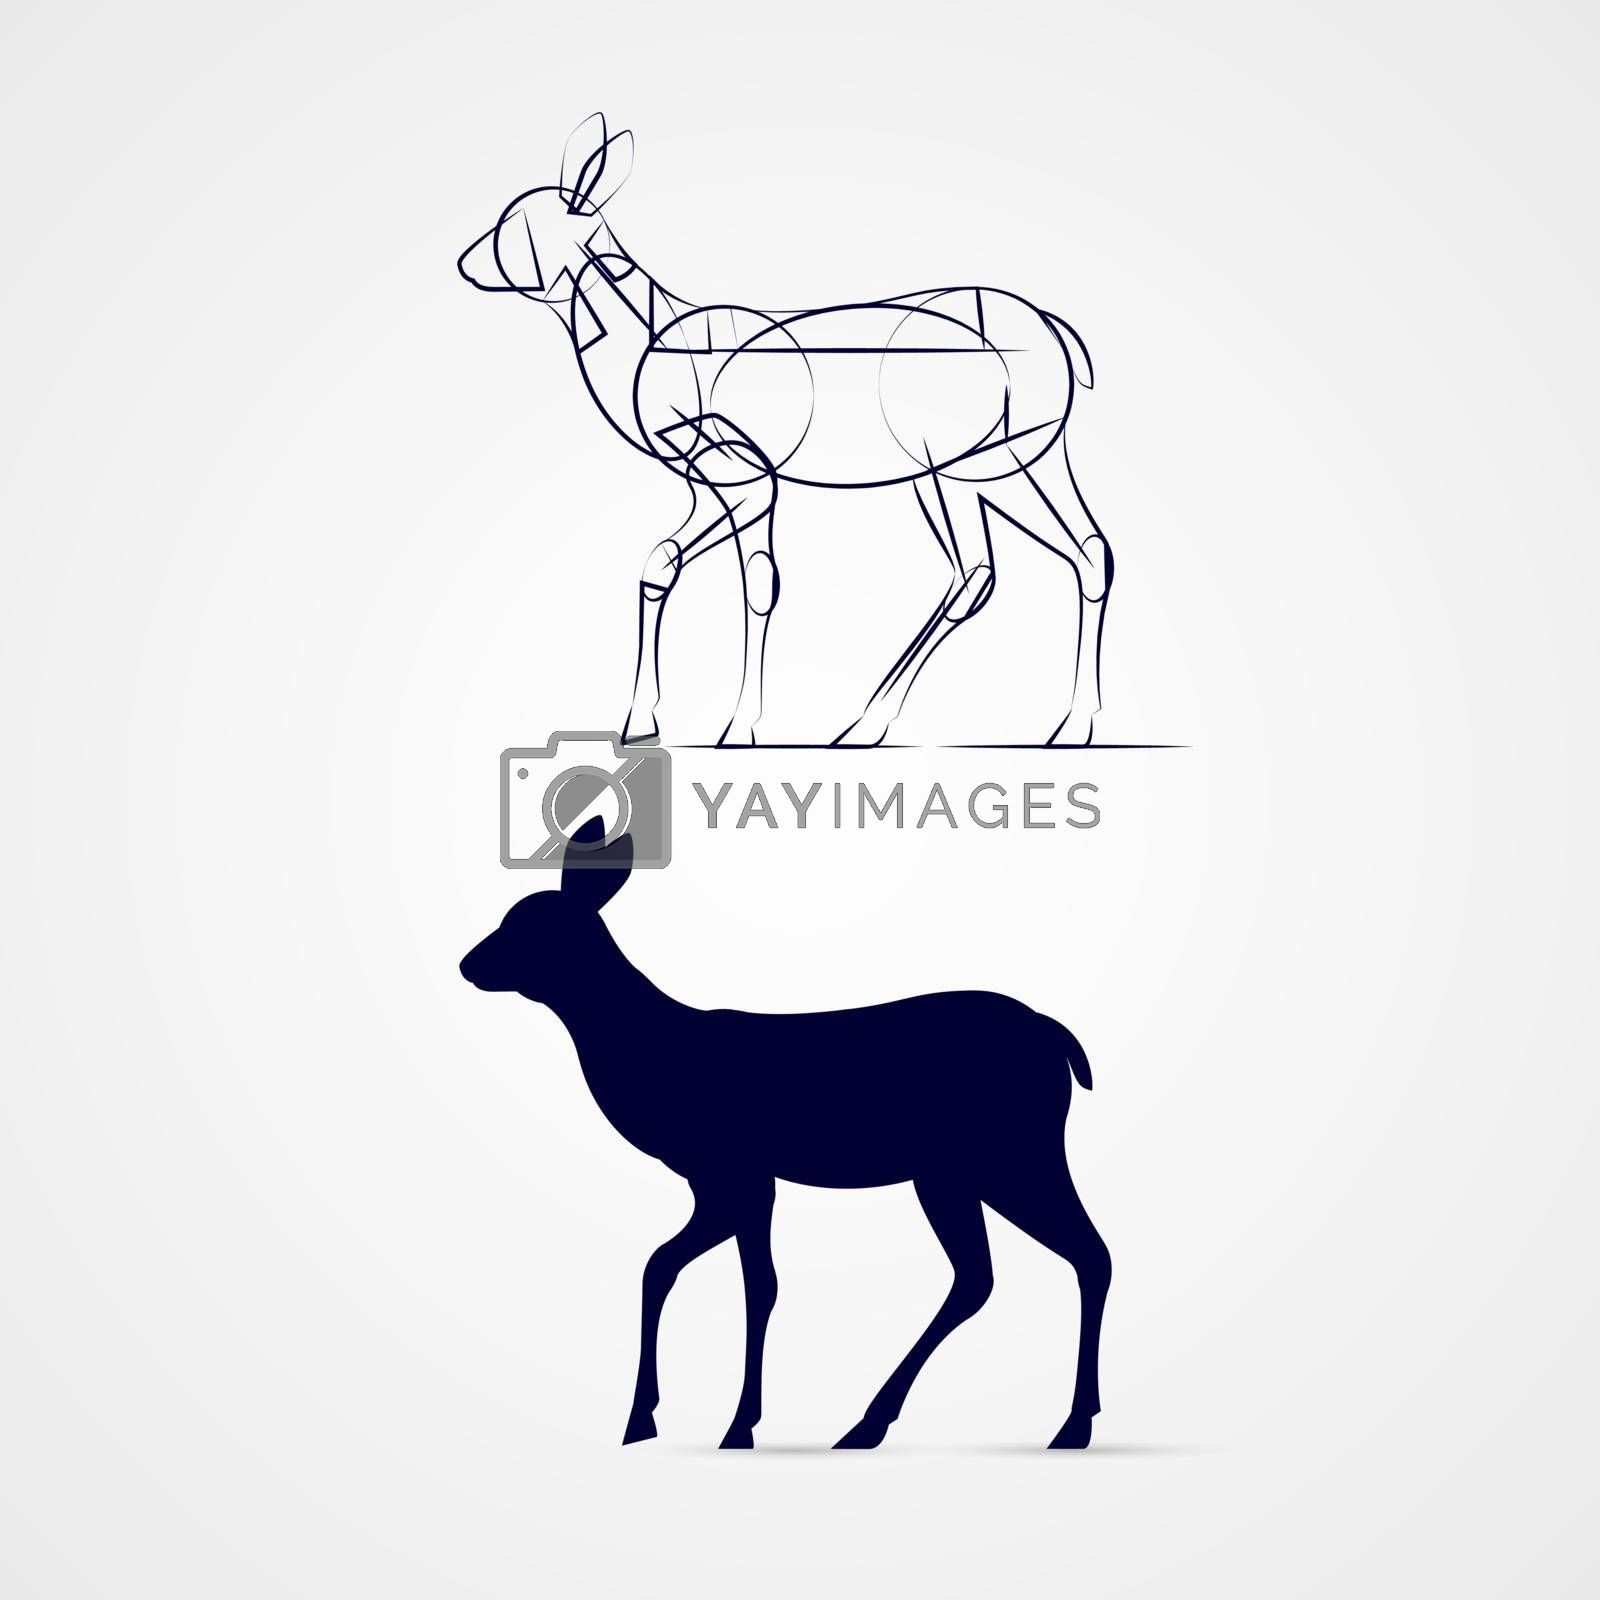 Young Deer Silhouette Standing with Sketch Template on Gray